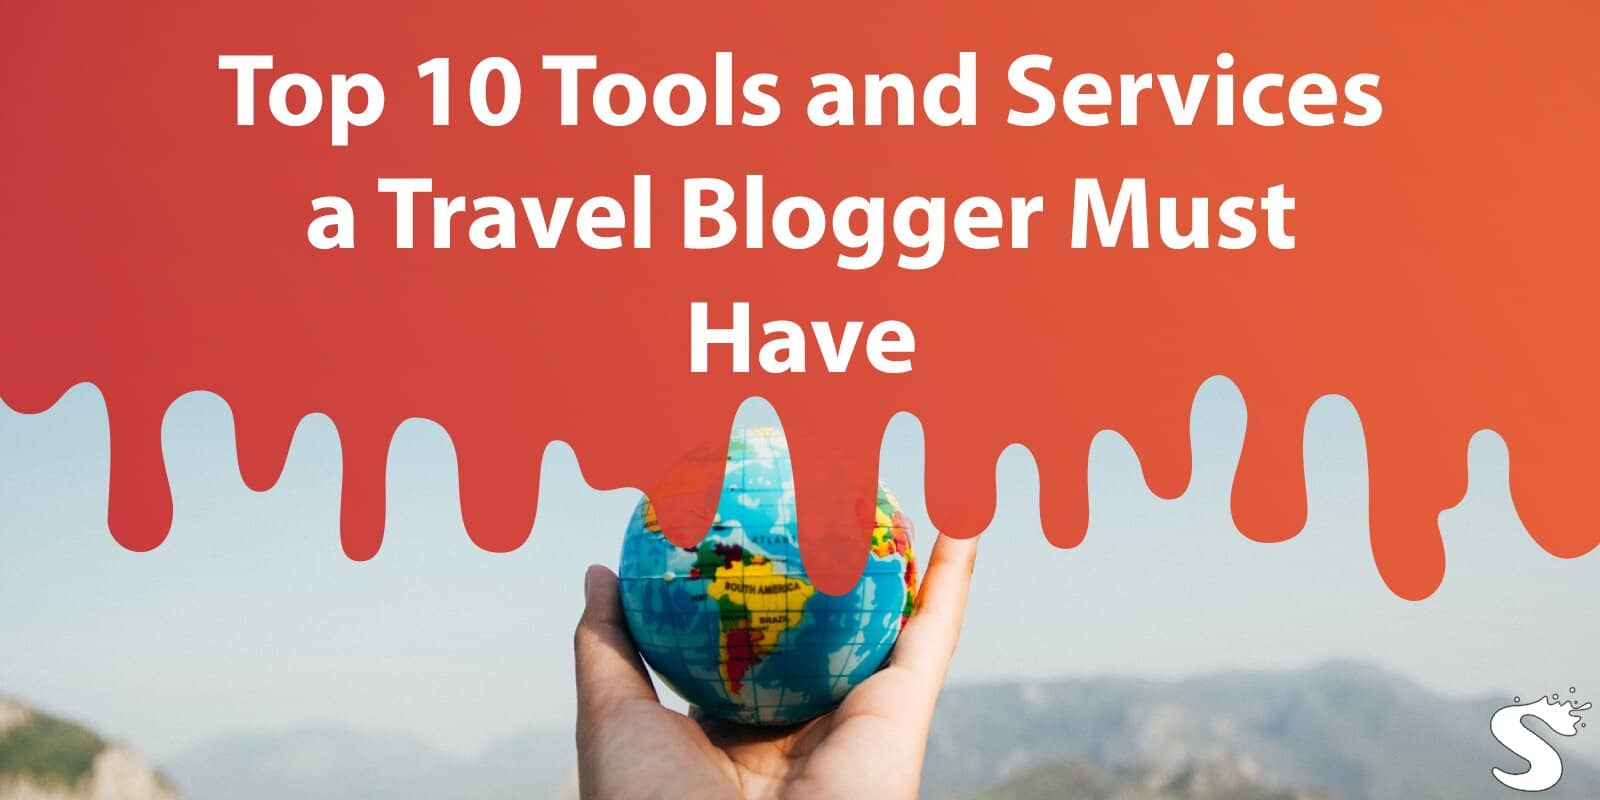 Top 10 Tools and Services a Travel Blogger Must Have to Beat the Ever-Growing Competition